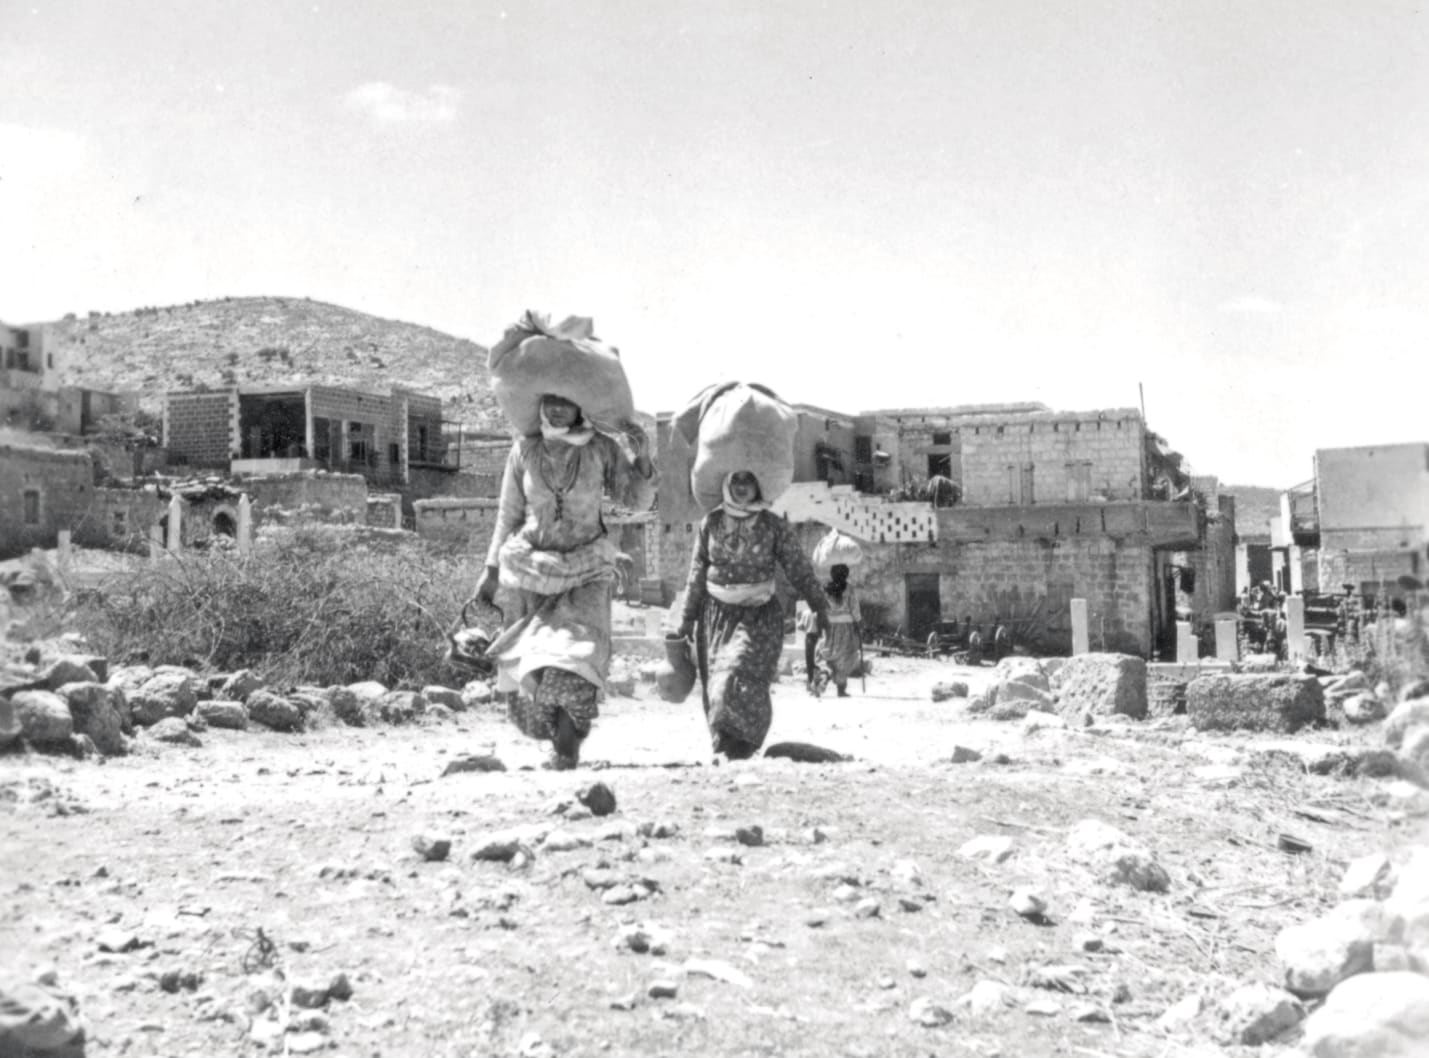 Palestinian refugees in the Ramle area, 1948.